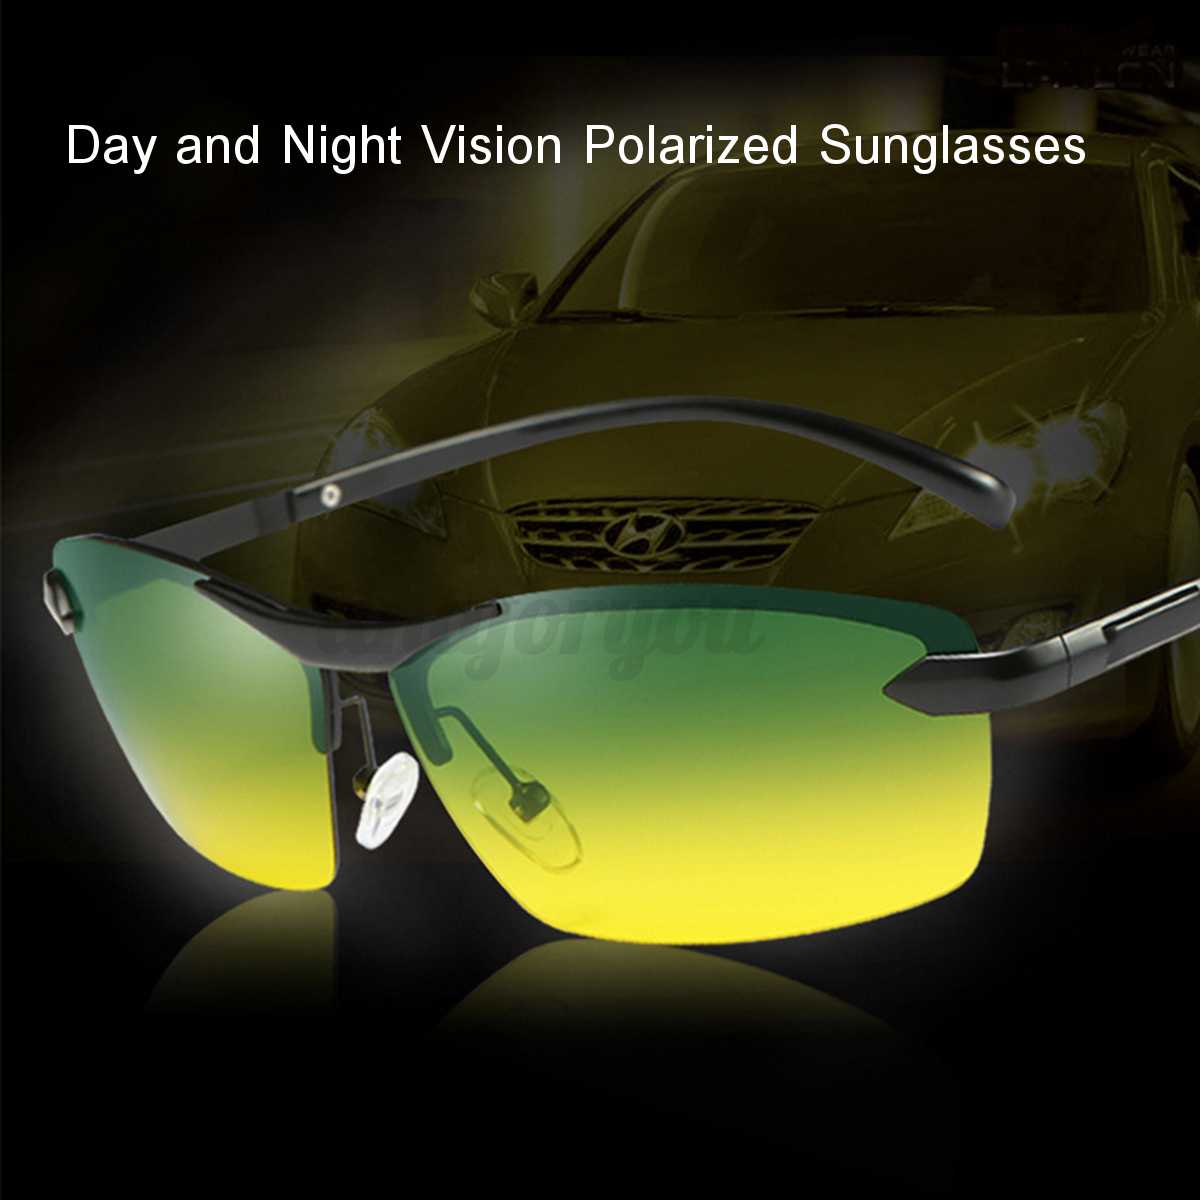 996d8f3b96 Polarized Day And Night Vision Driving Glassesn